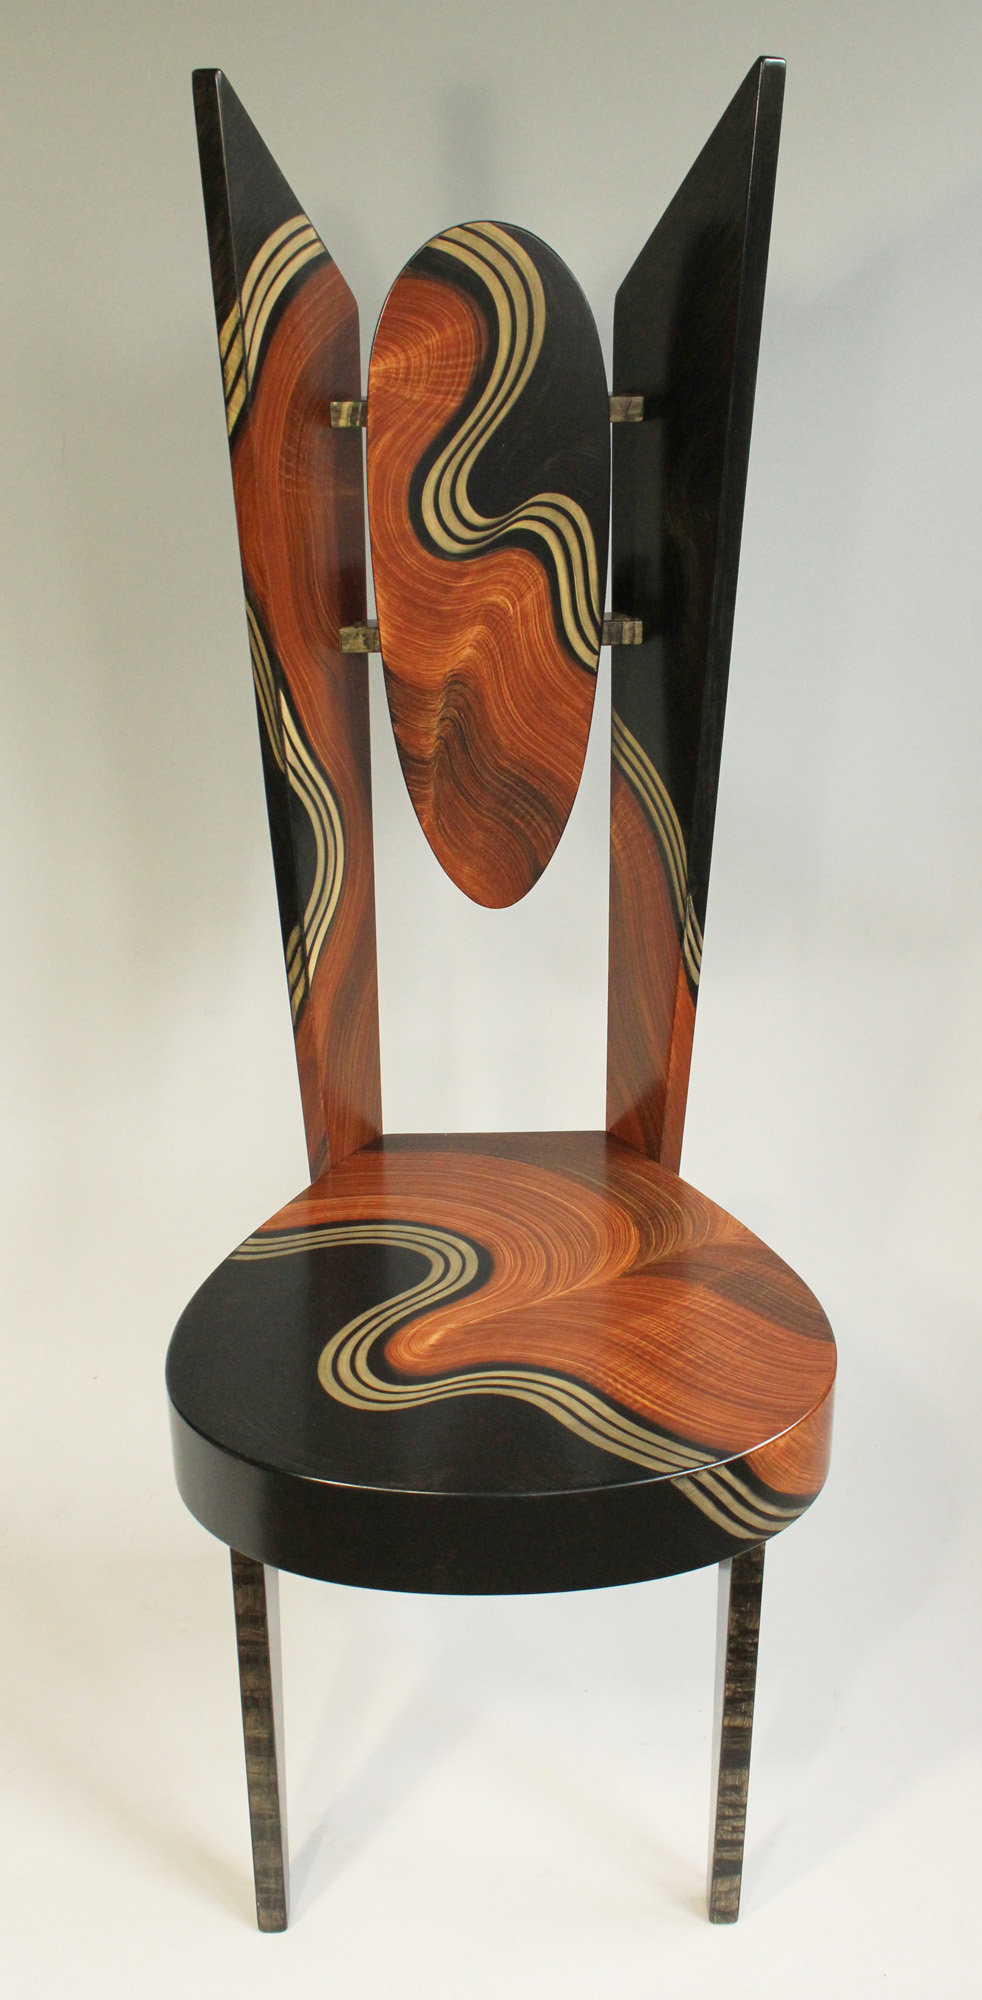 Burl Swirl Wing Chair